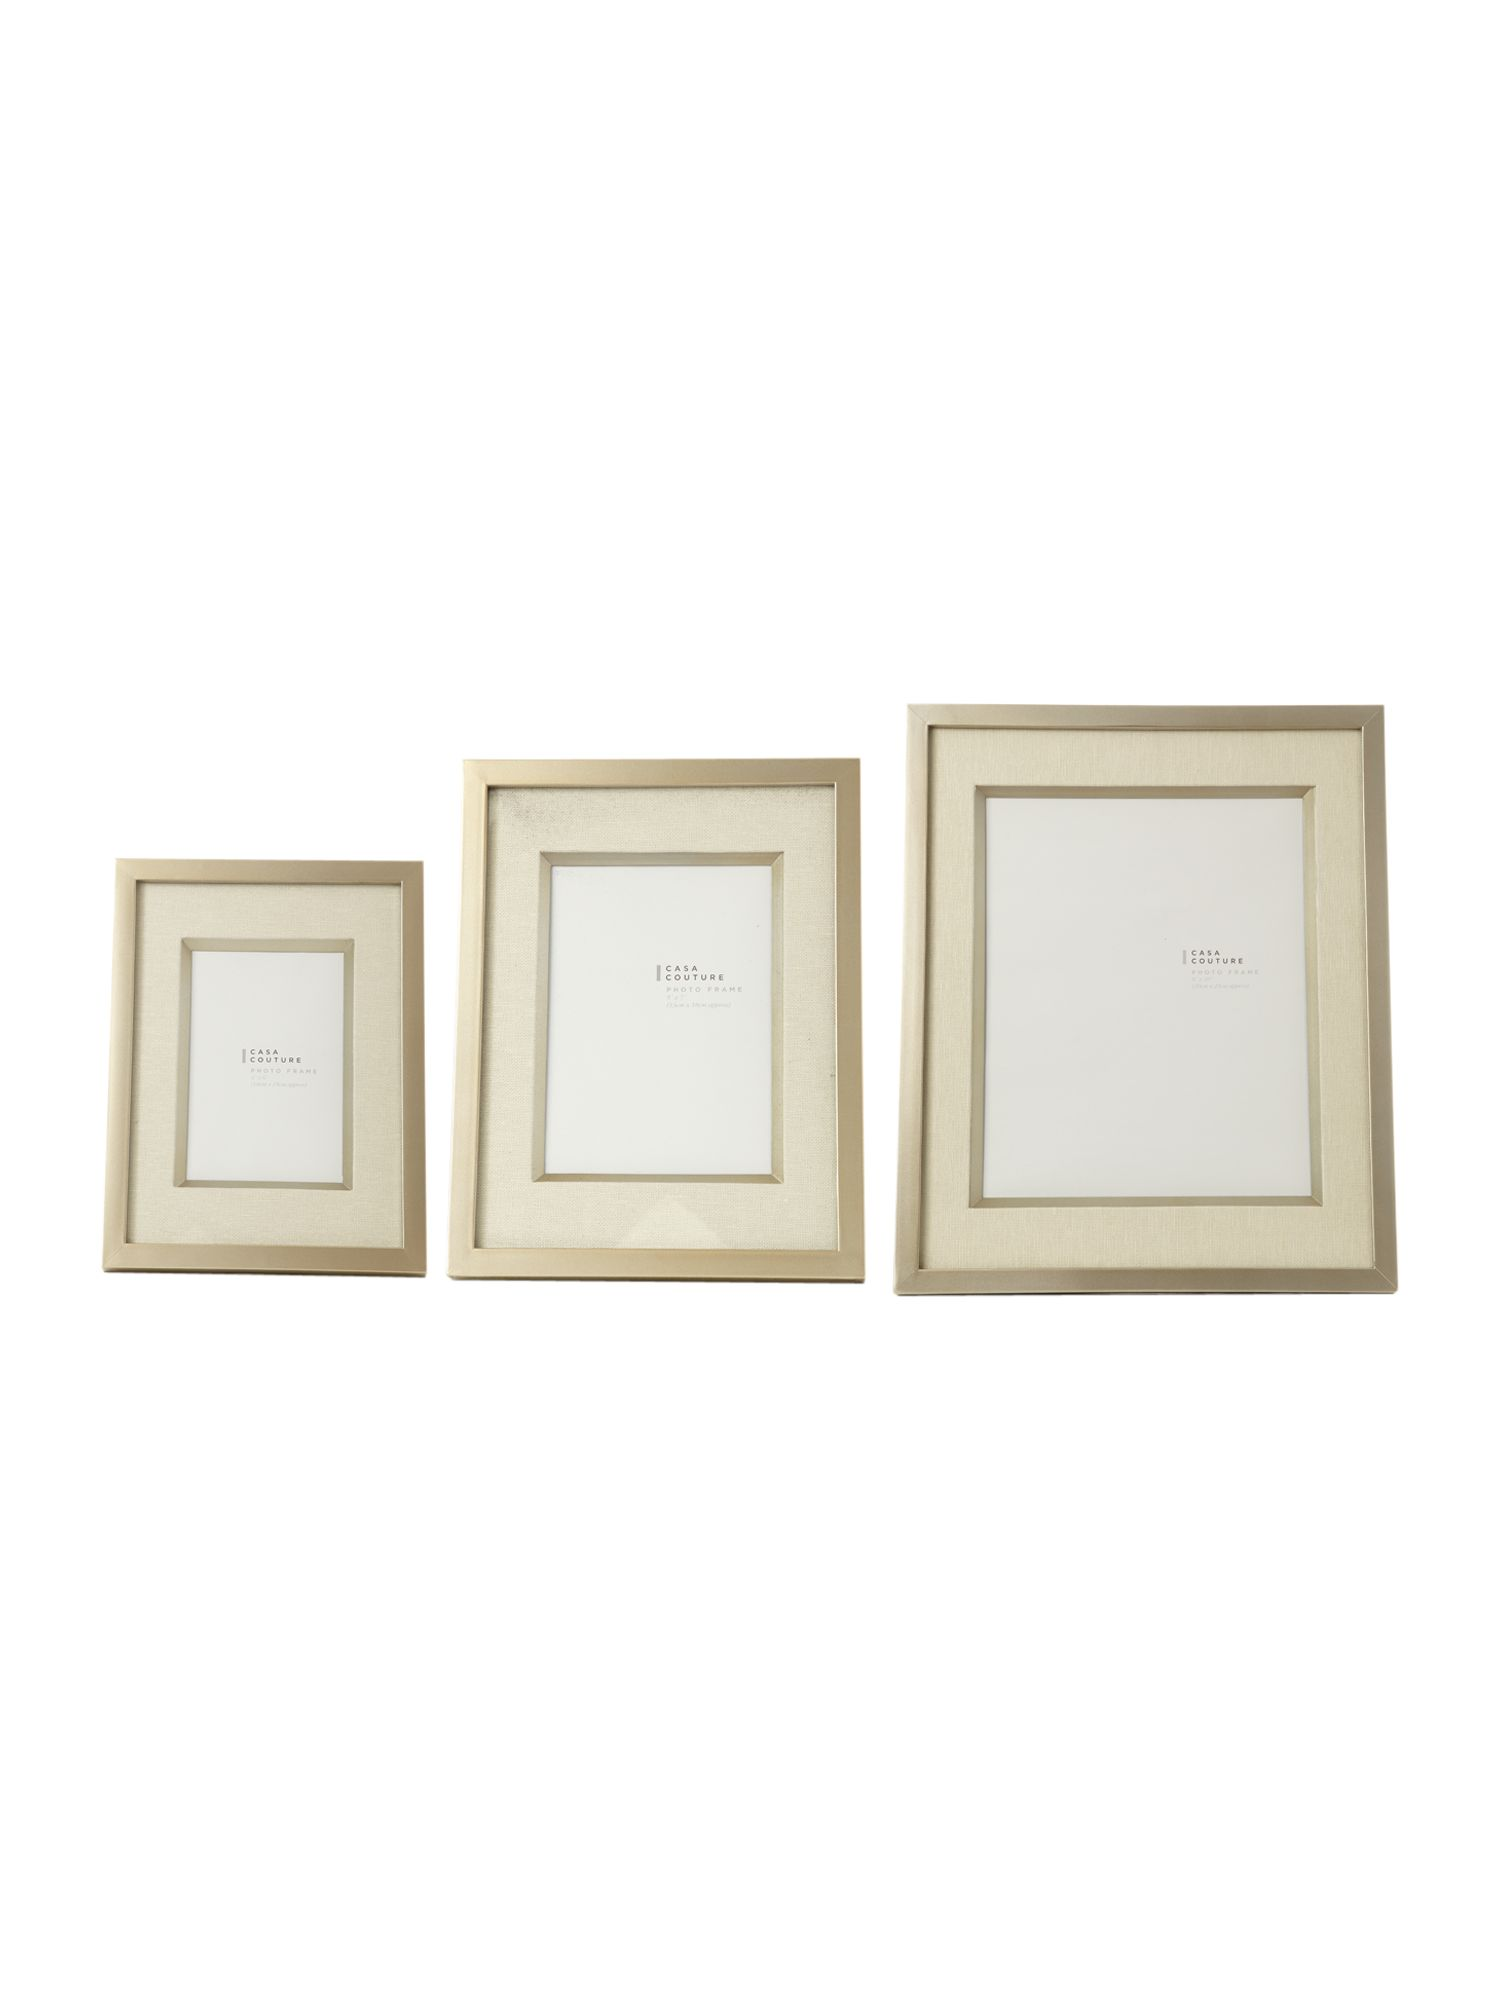 Fabric mount frames